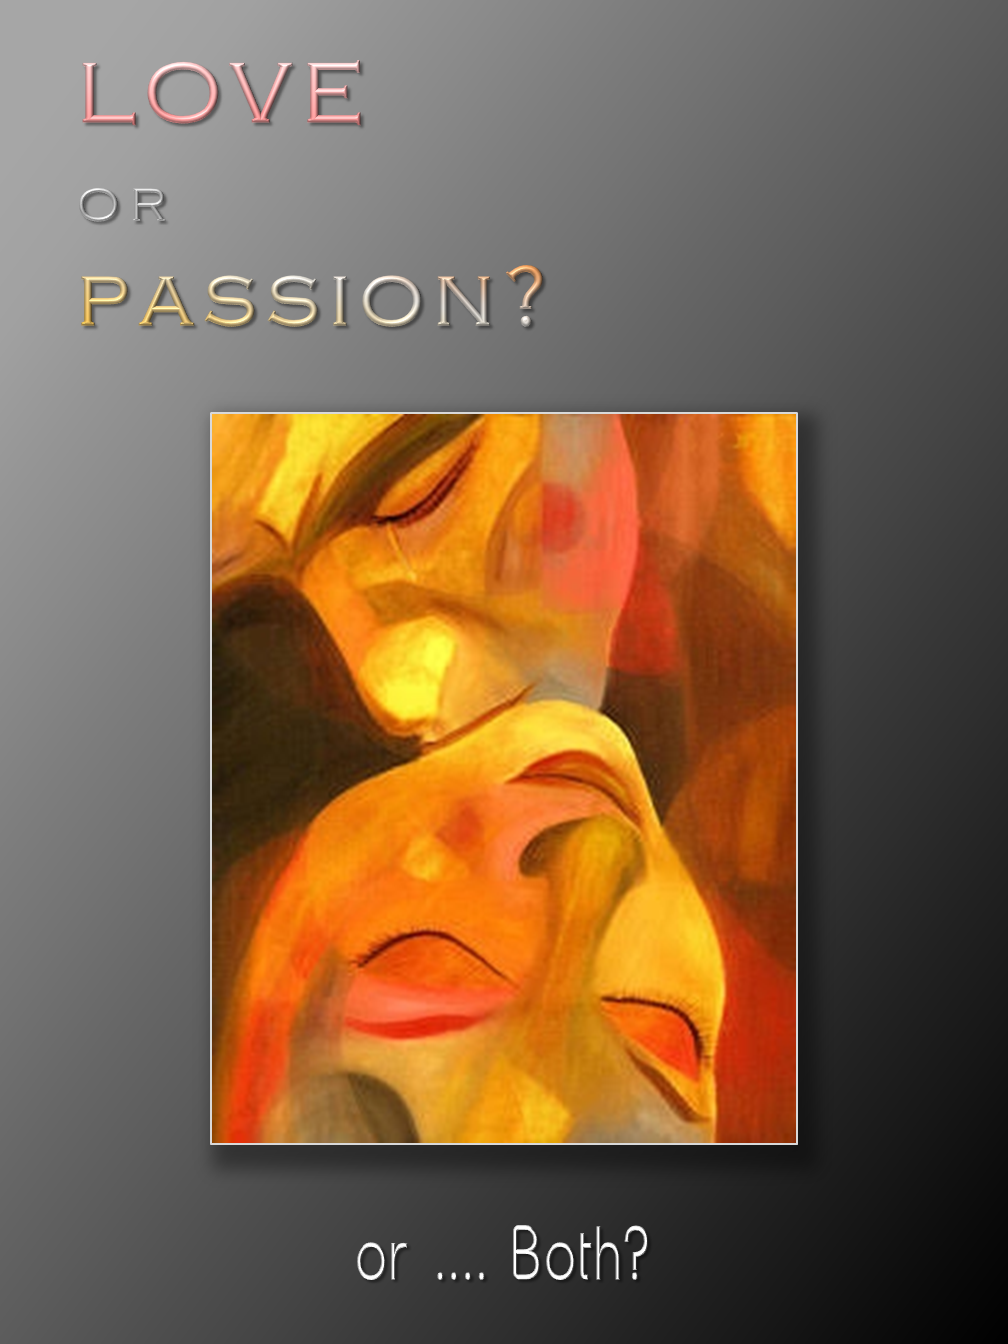 Love or Passion